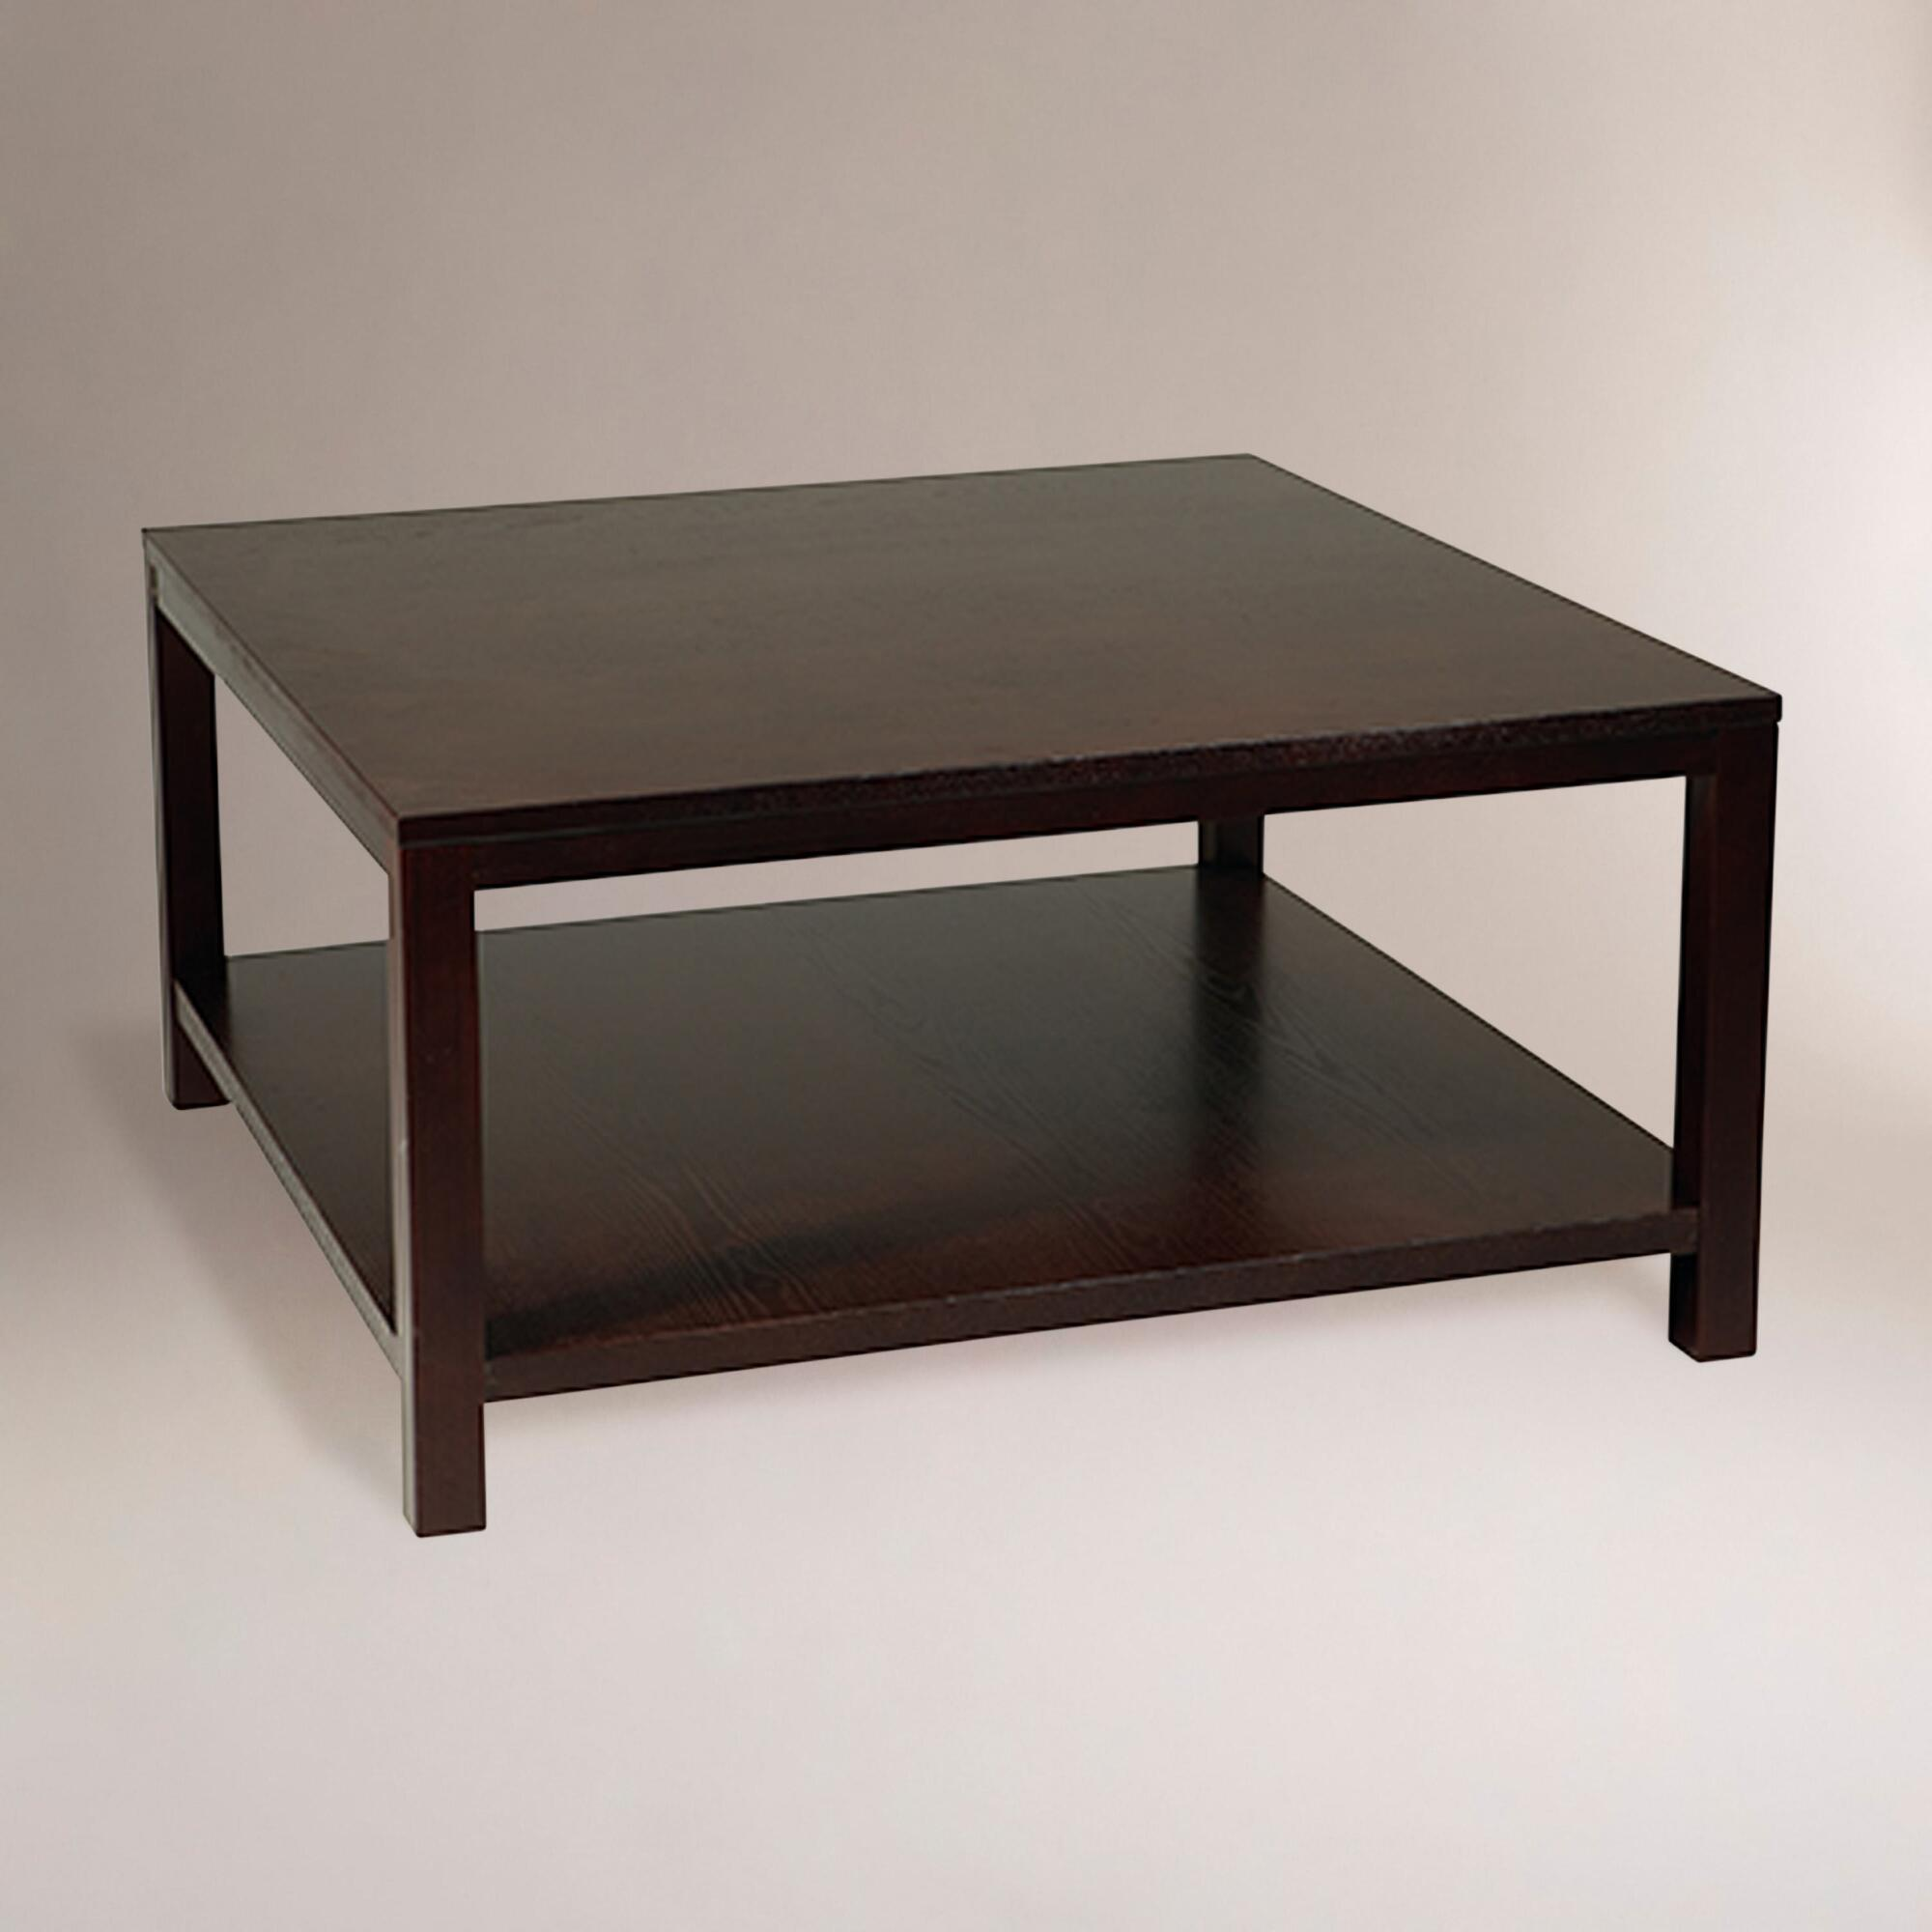 Square Coffee Table: Square Porter Coffee Table